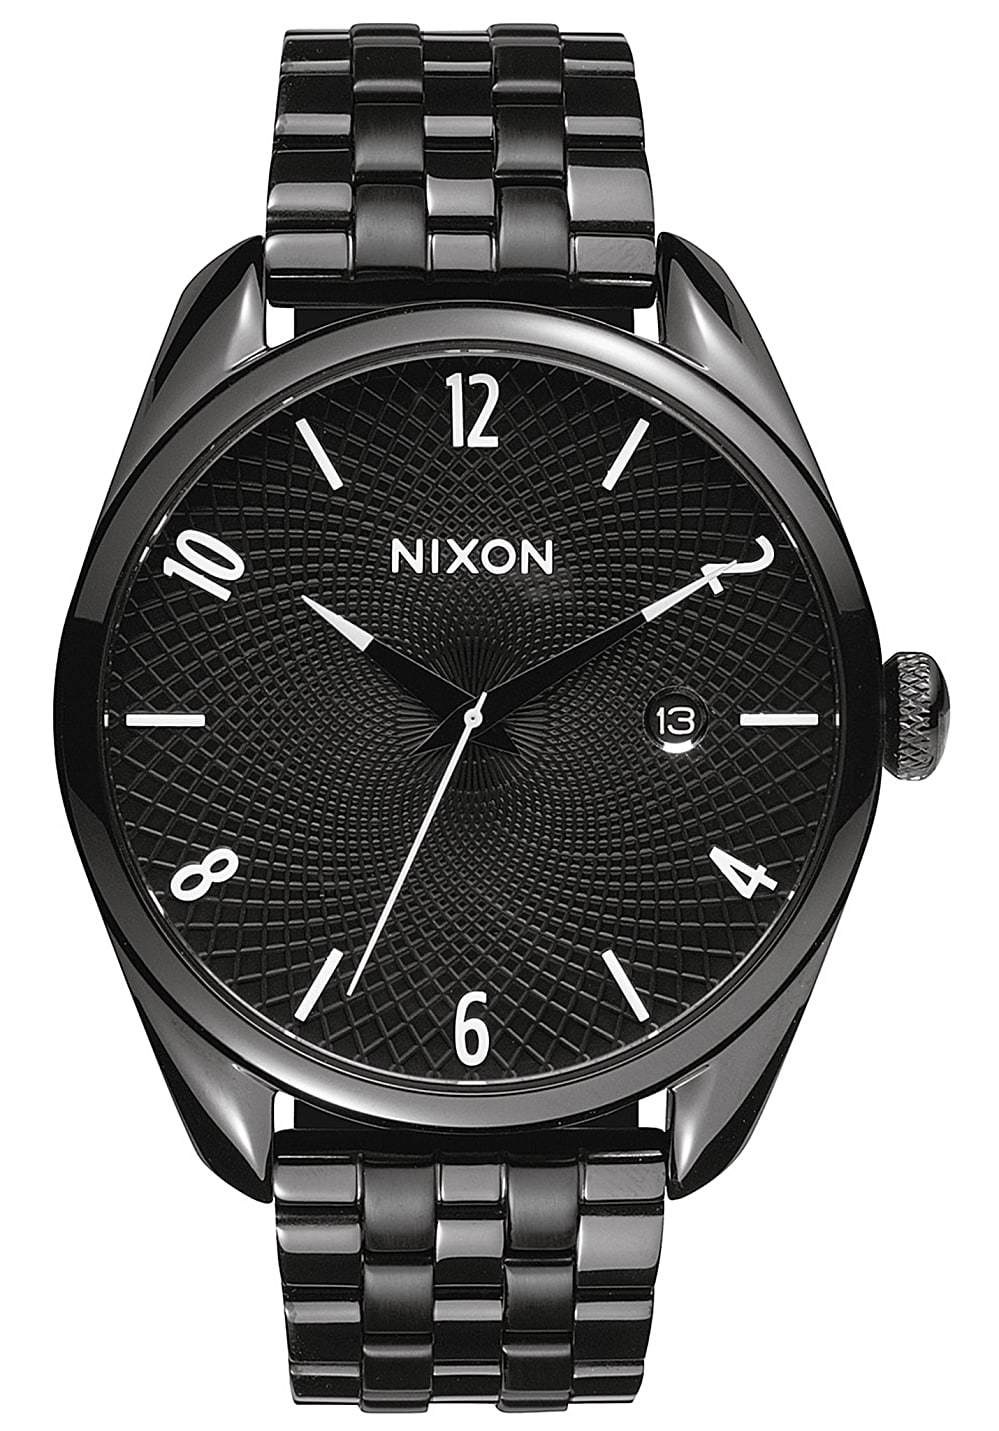 nixon bullet uhr f r damen schwarz g nstig schnell. Black Bedroom Furniture Sets. Home Design Ideas